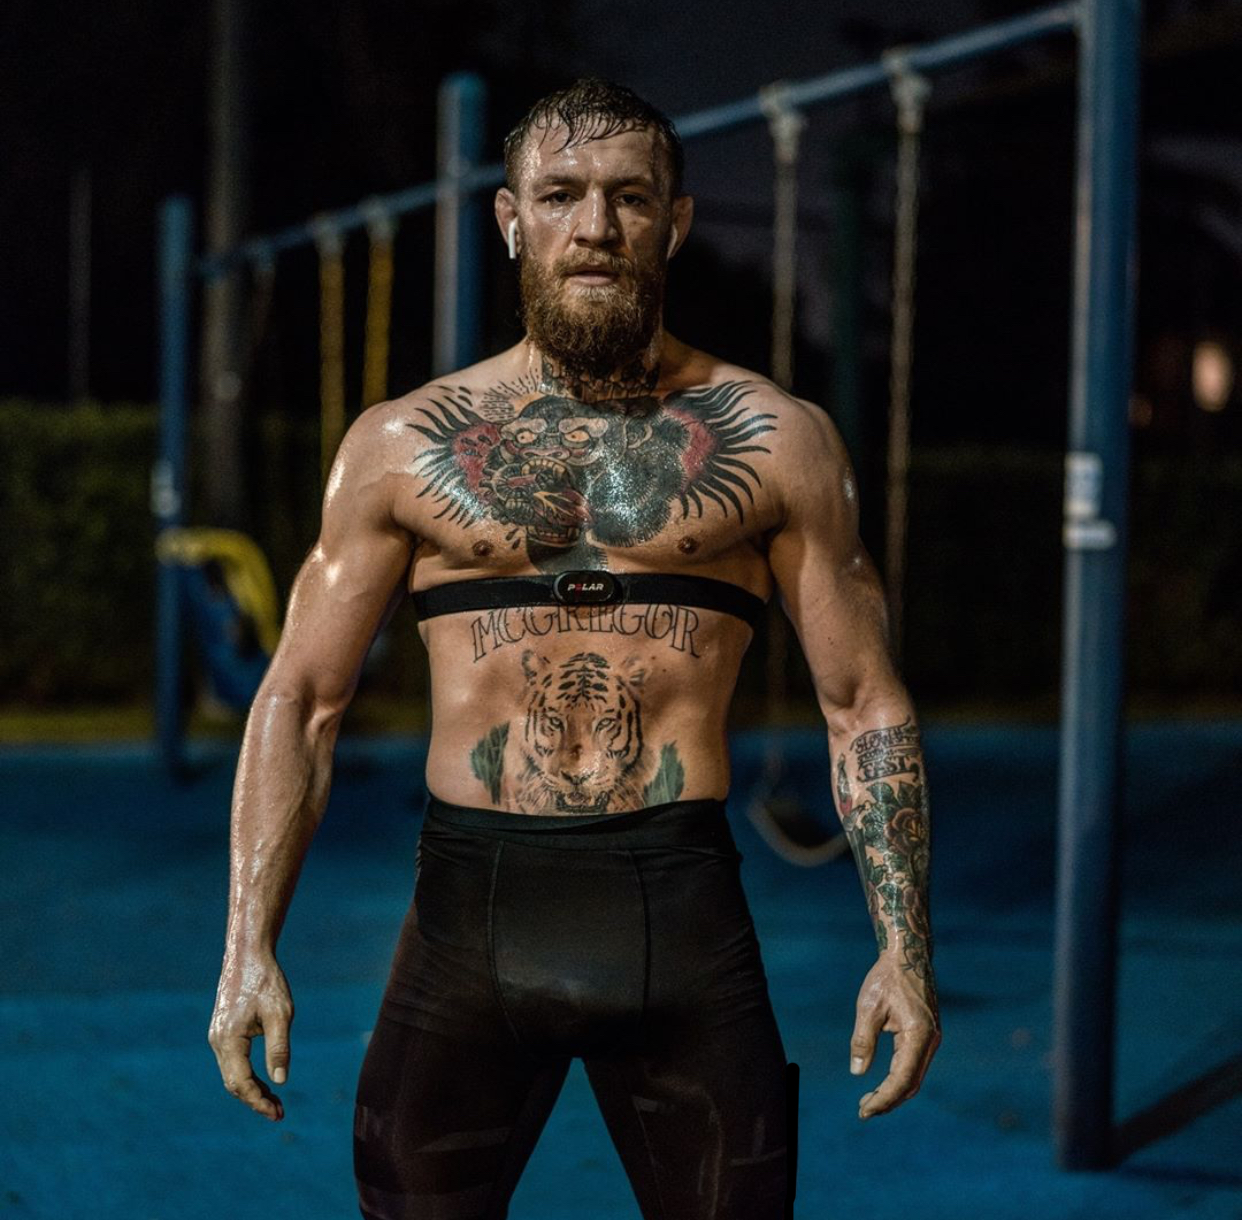 The notorious Conor Mcgregor. Photo taken by Instagram account thenotoriousmma